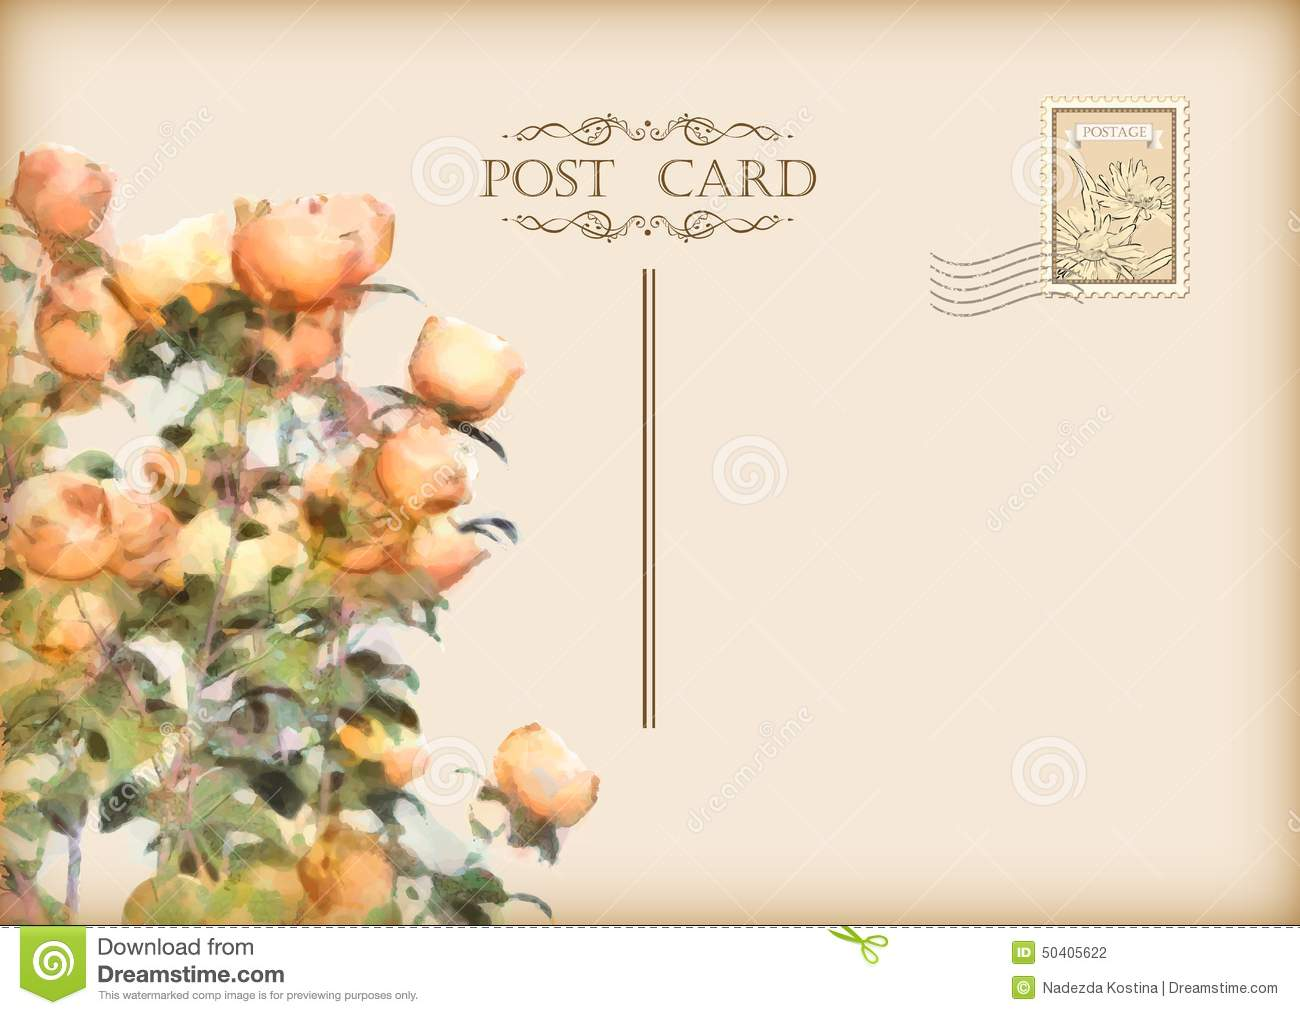 Vintage Postcard Template Free Download